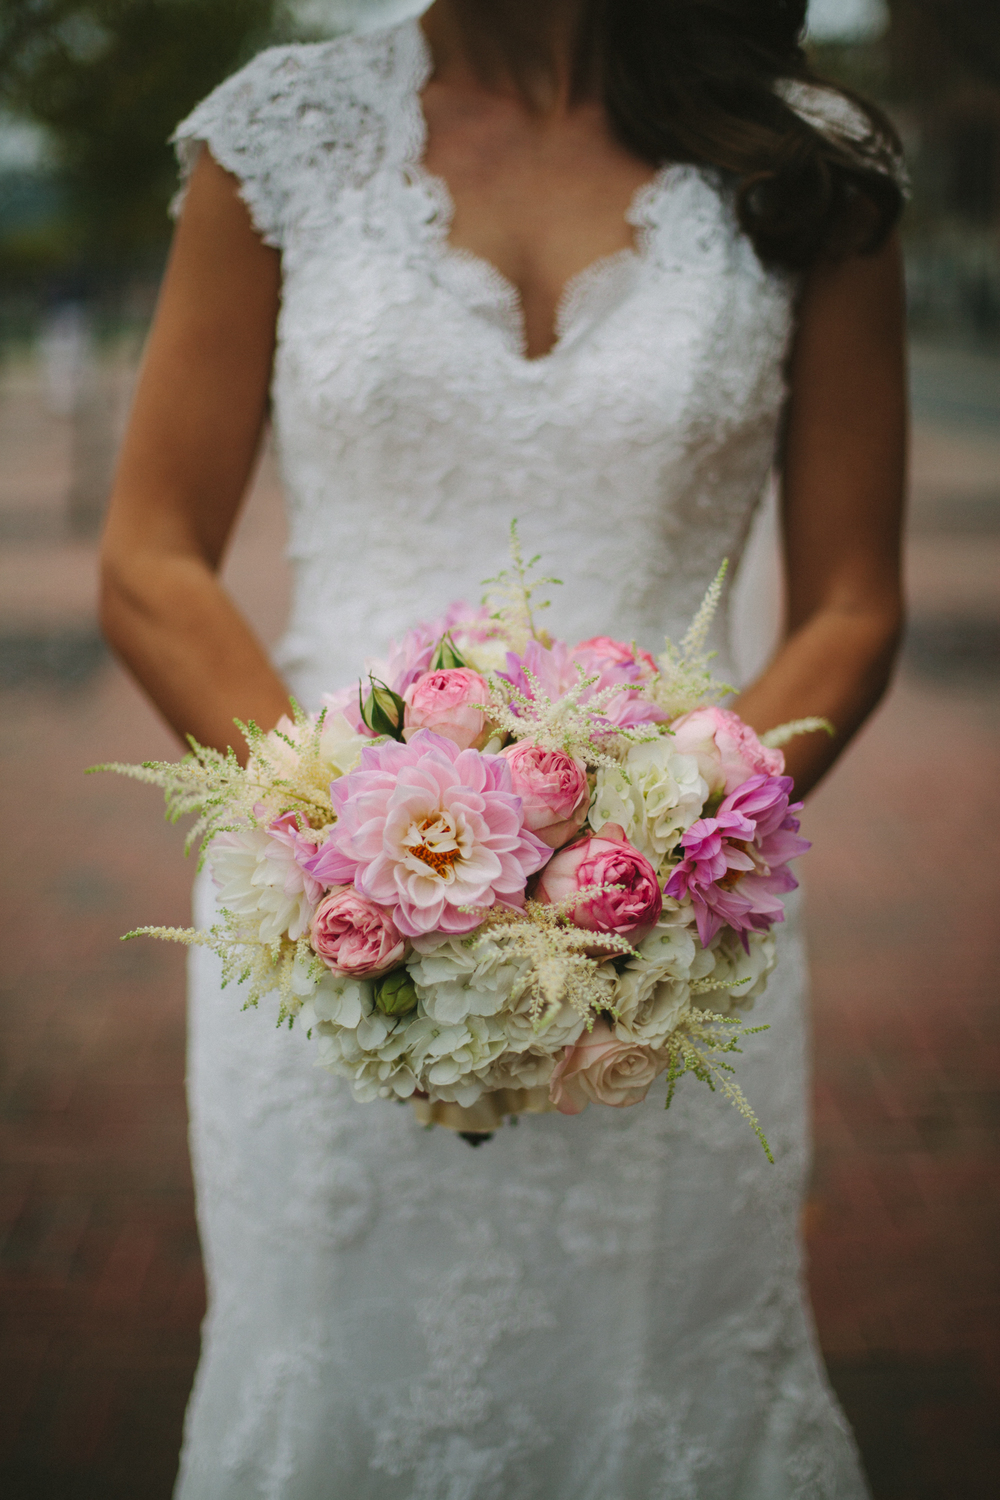 Bridal Bouquets Nashville Tn : Anna cameron downtown nashville wedding rosemary